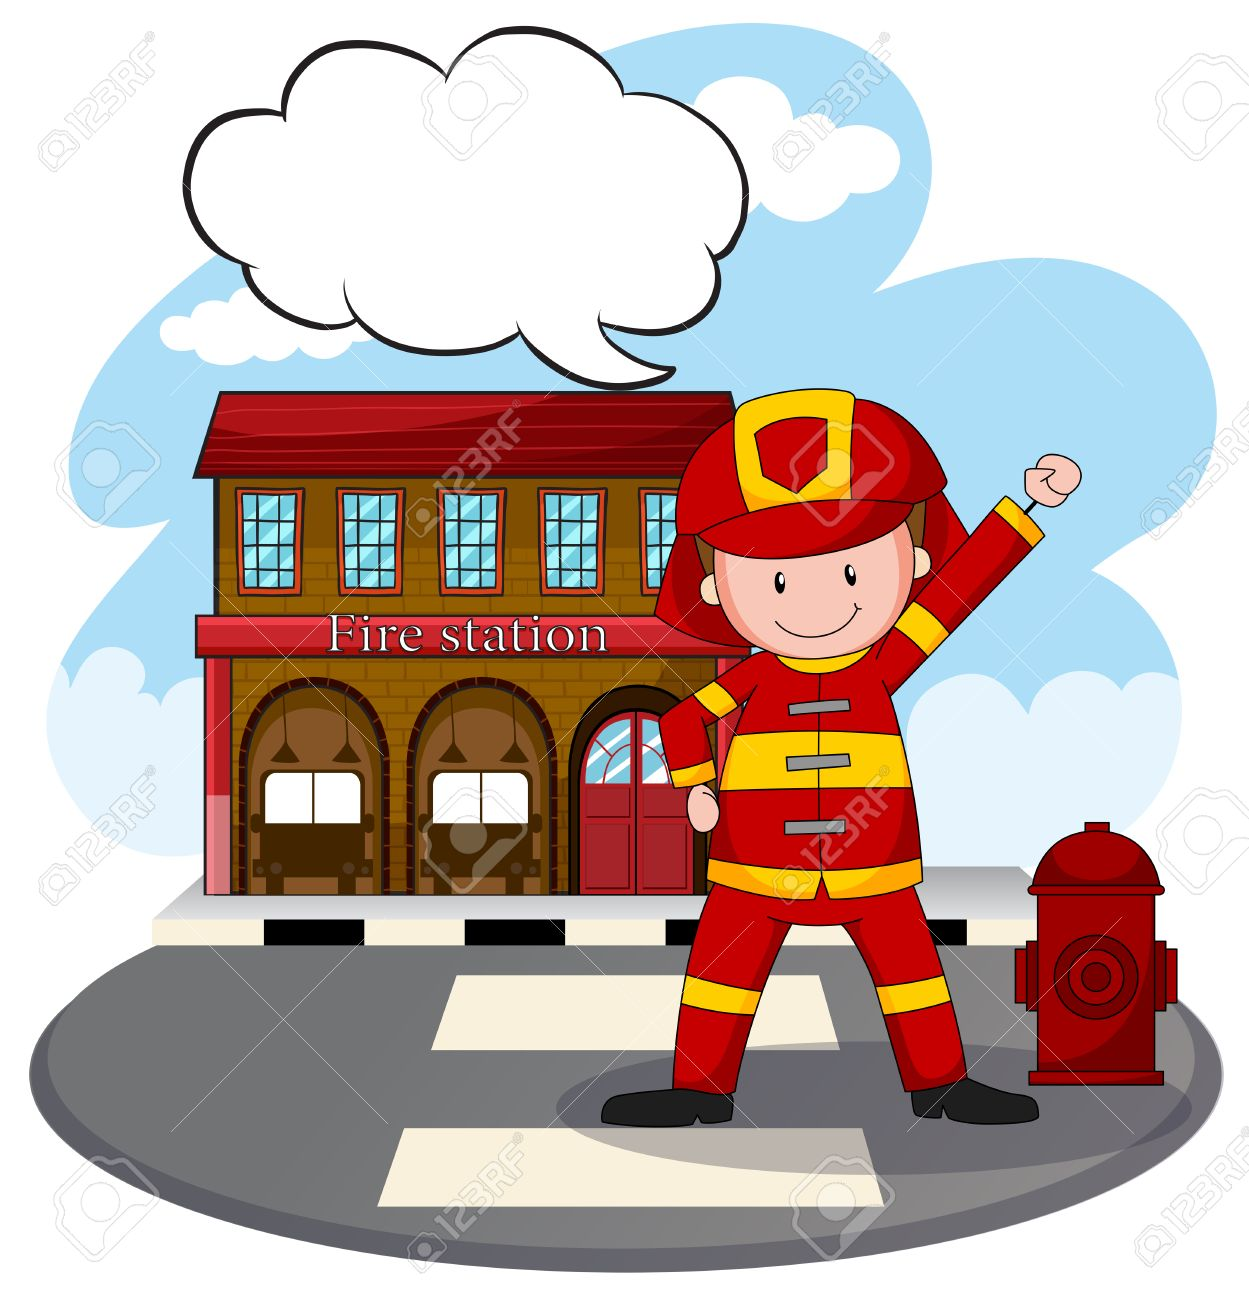 fire fighter standing in front of fire station royalty free cliparts rh 123rf com fire department clip art free fire station clipart